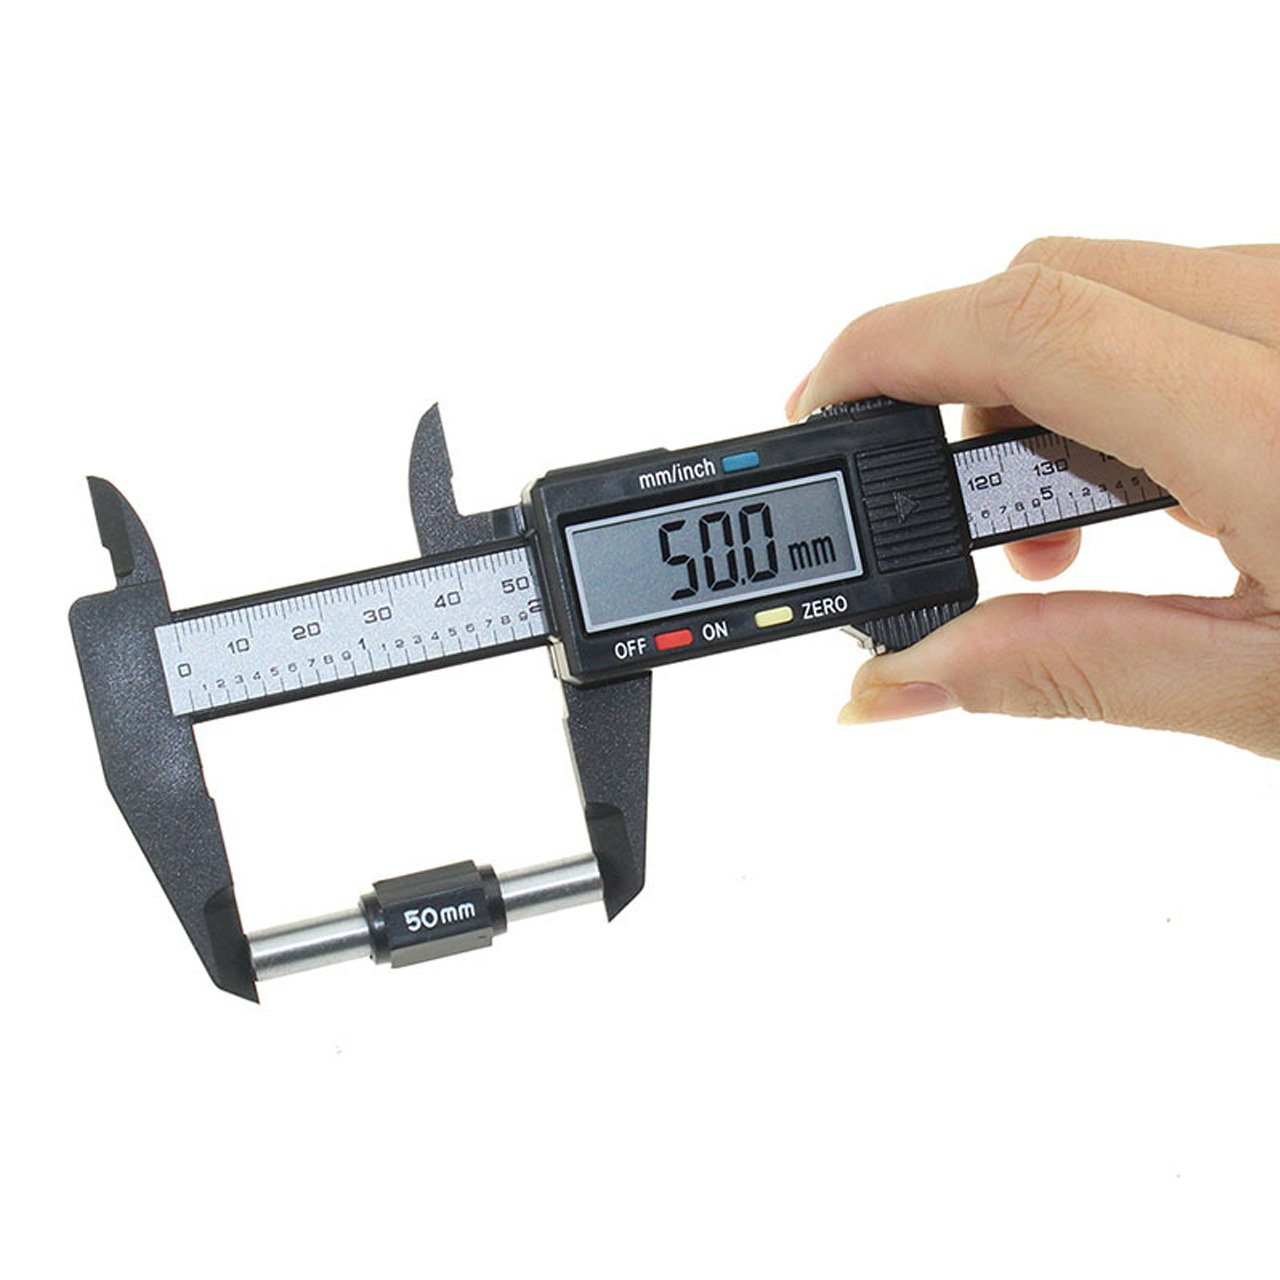 Digital Vernier Caliper, July Miracle Extra-Large LCD Screen 150mm 0-6 Inch Millimeter/Inch Conversion Gauge Measuring Tool